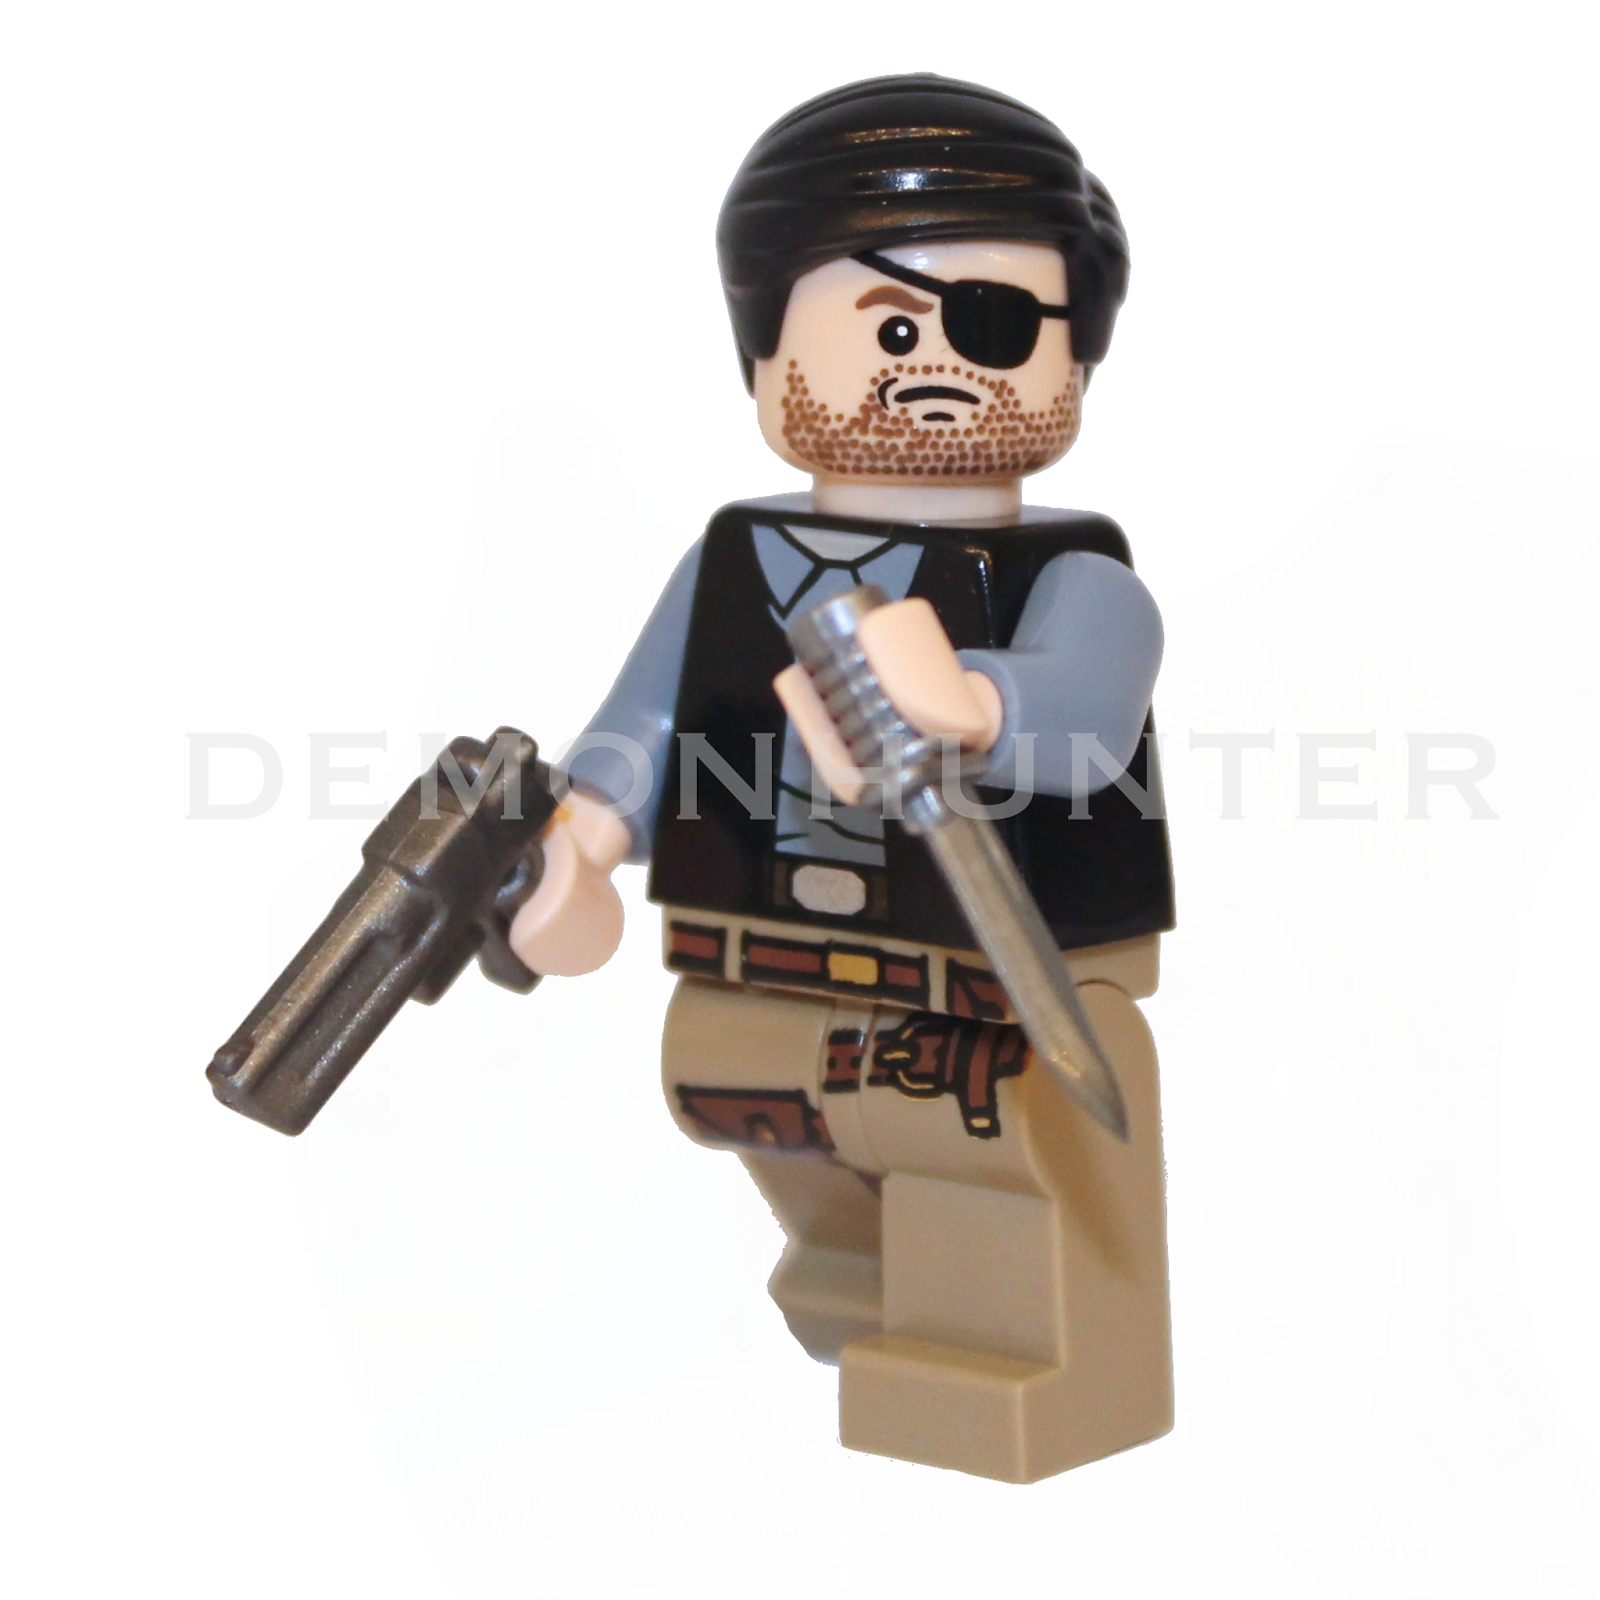 Walking dead lego daryl the walking - Lego Custom Figures Afol The Governor Lego Philip Blake Lego The Walking